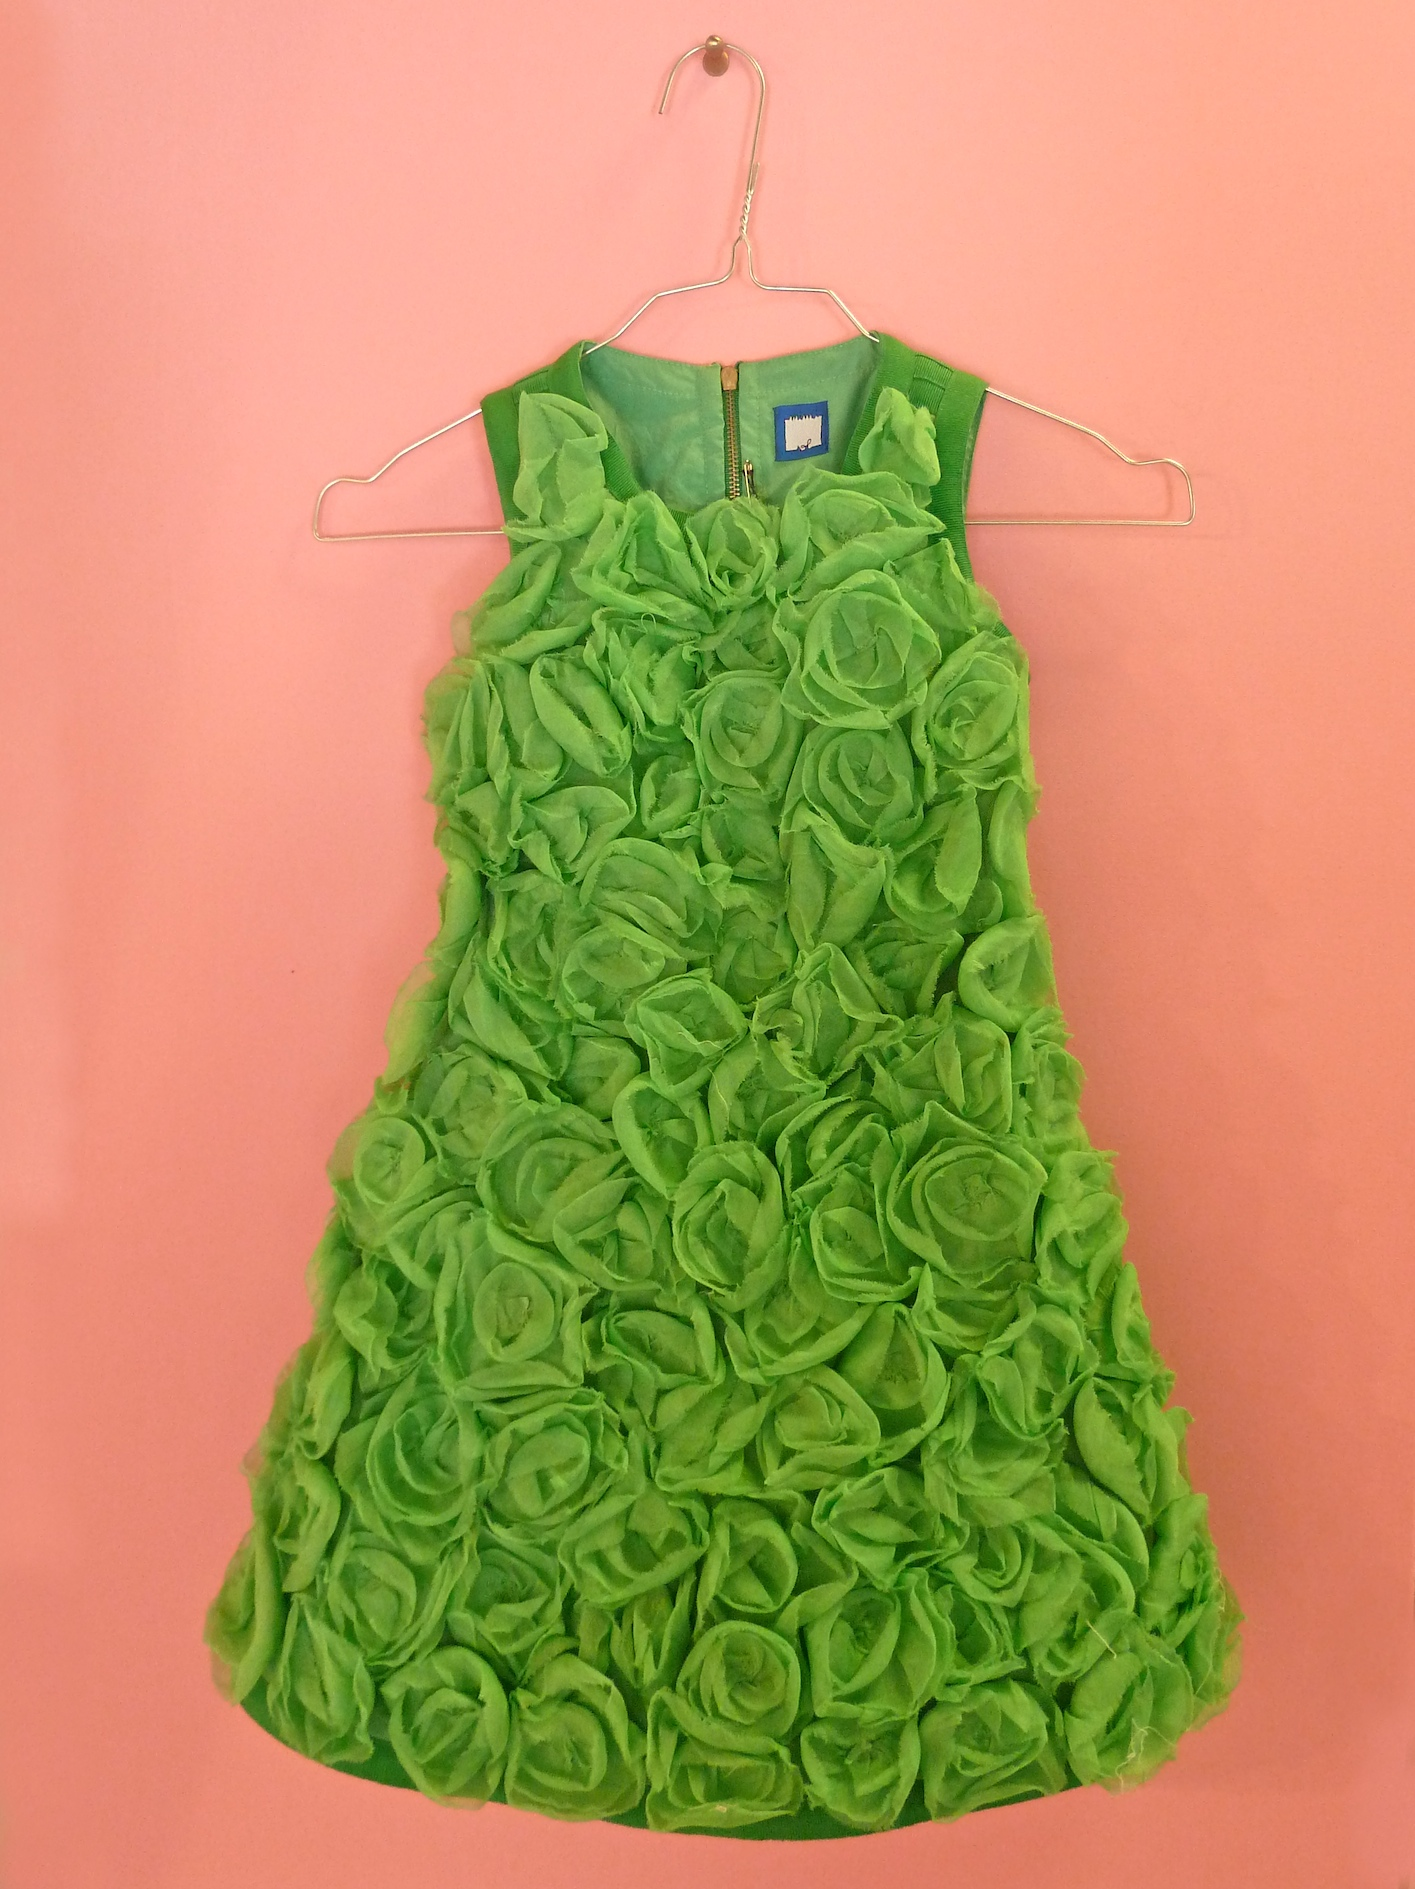 Amazing flower dress from Mi Mi Sol, the new label from Imelde Bronzieri, one half of the original I Pinco Pallino at Pitti Bimbo 73